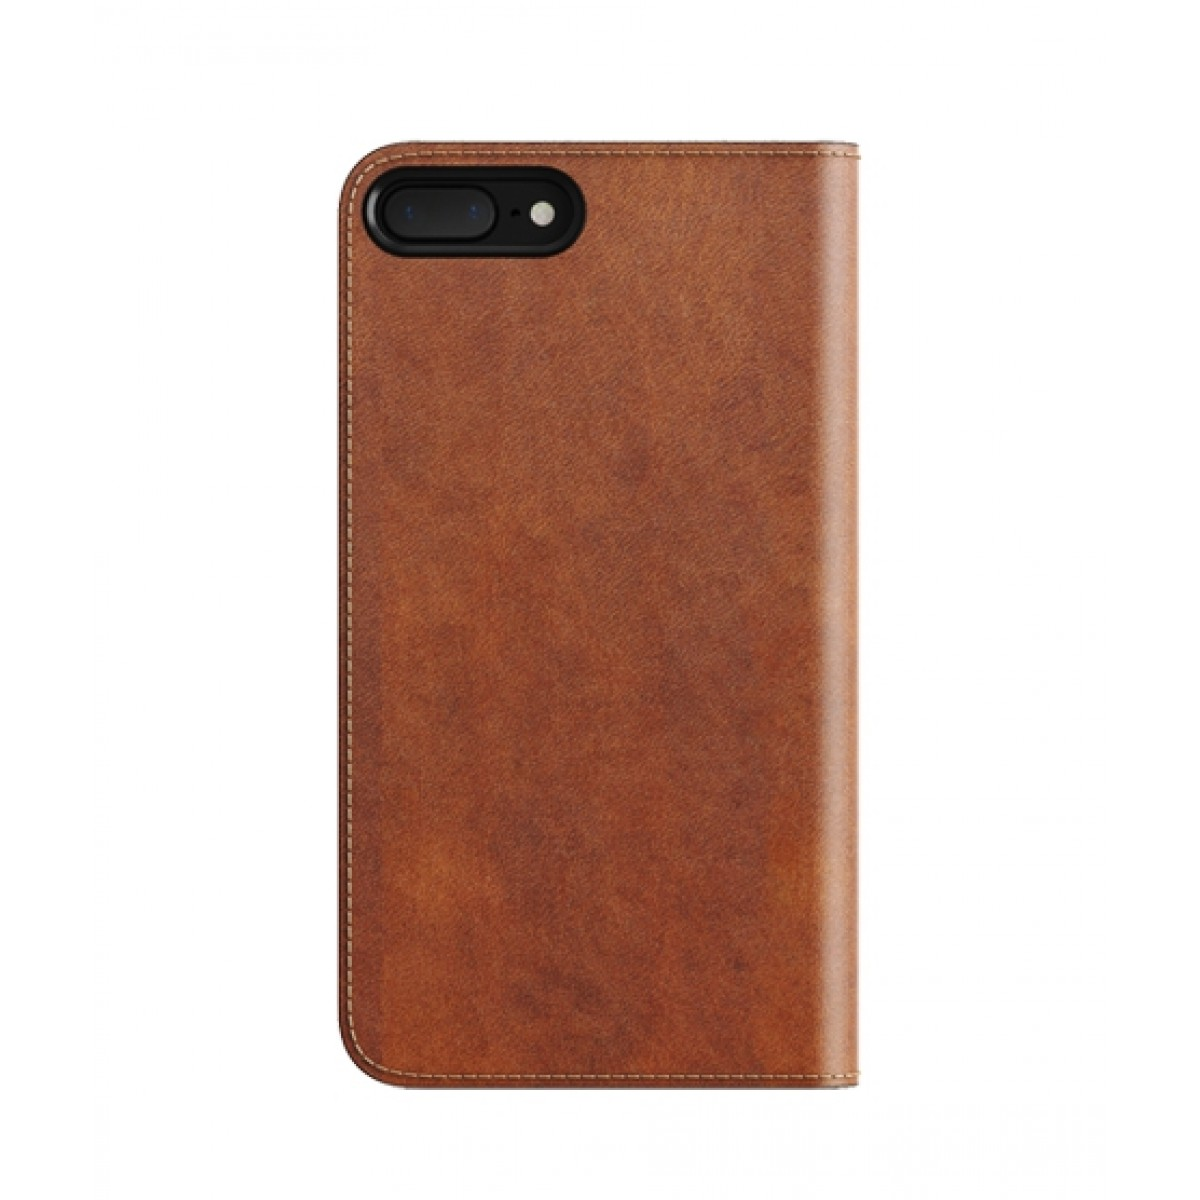 competitive price b4a95 f38d7 Nomad Leather Folio Rustic Brown Case For iPhone 8 Plus